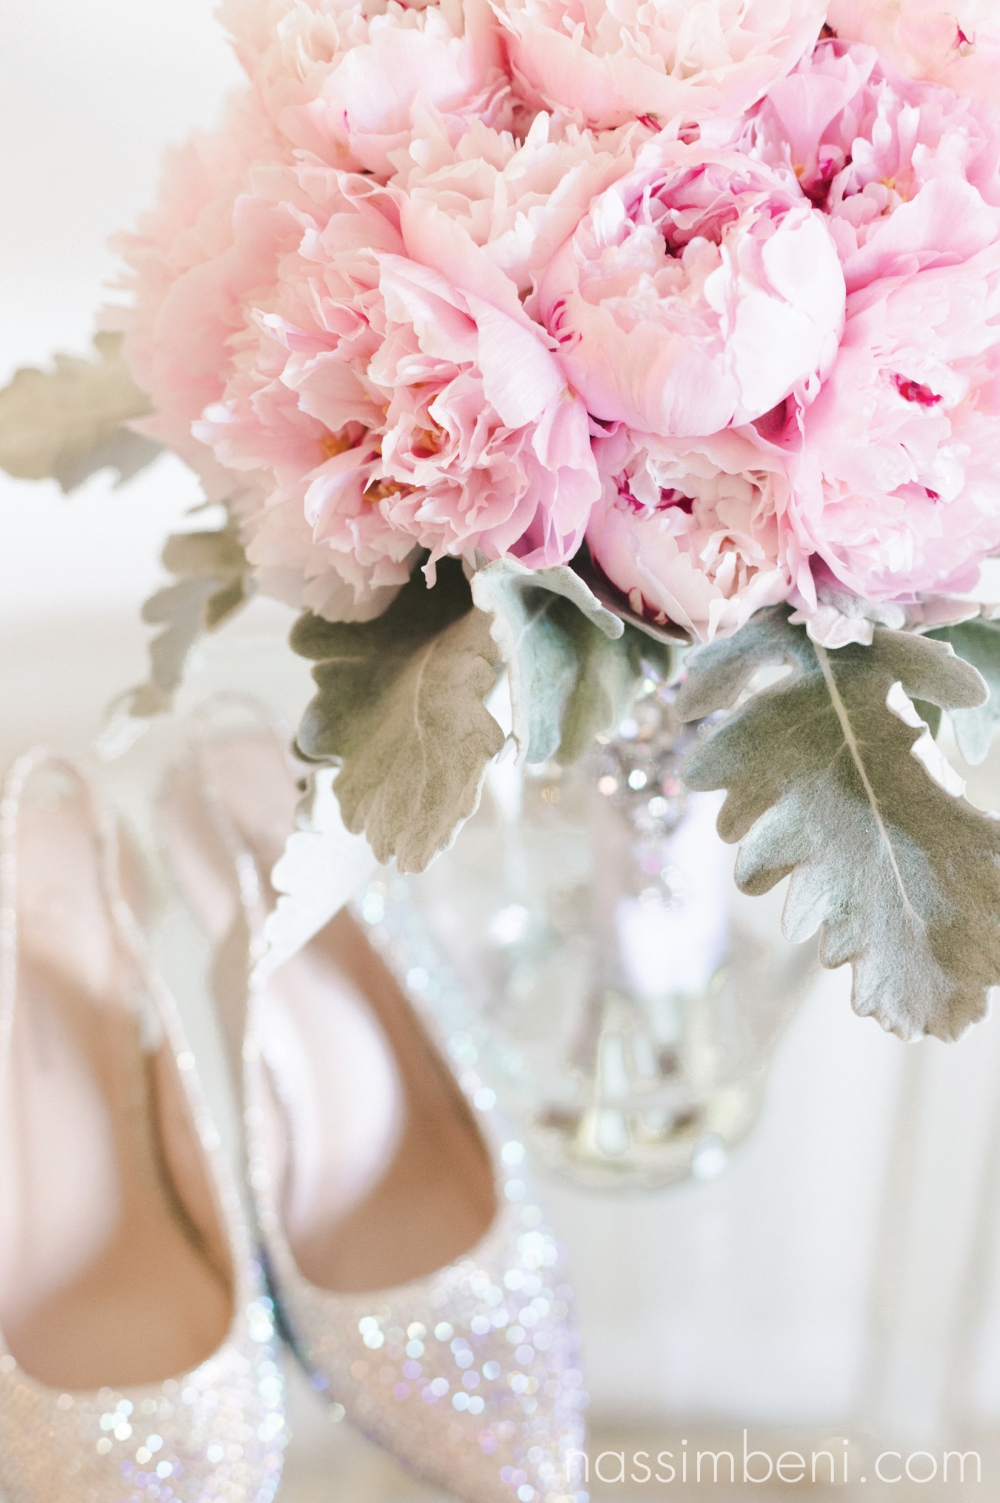 flowers by susan for princess theme port st lucie wedding by Nassimbeni Photography